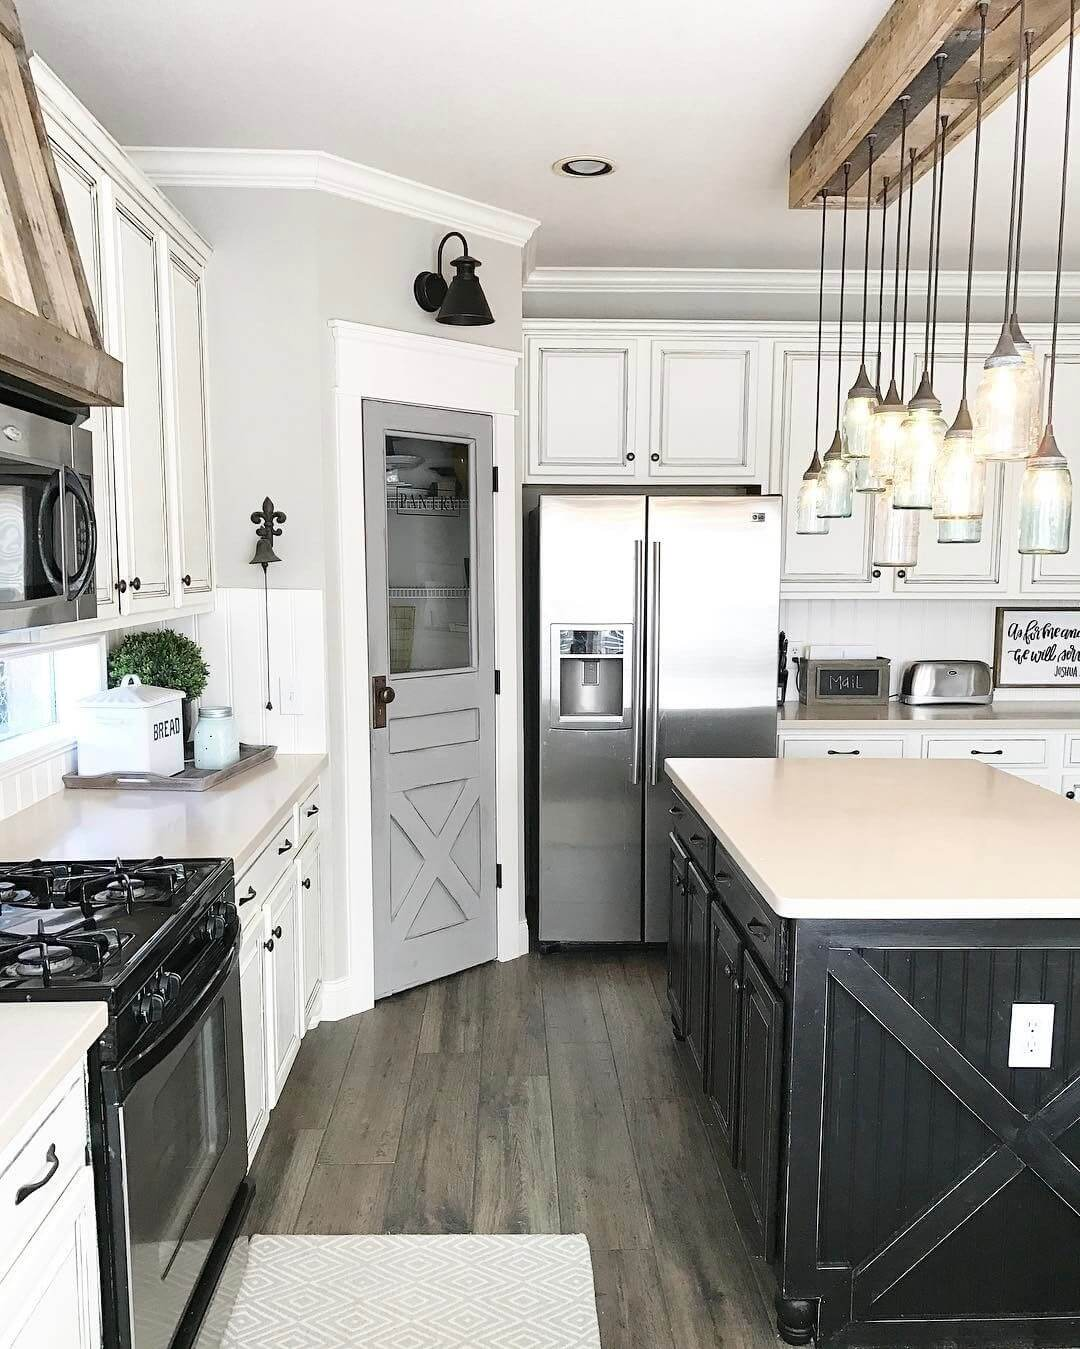 House Interior Design Kitchen: 35+ Best Farmhouse Interior Ideas And Designs For 2019